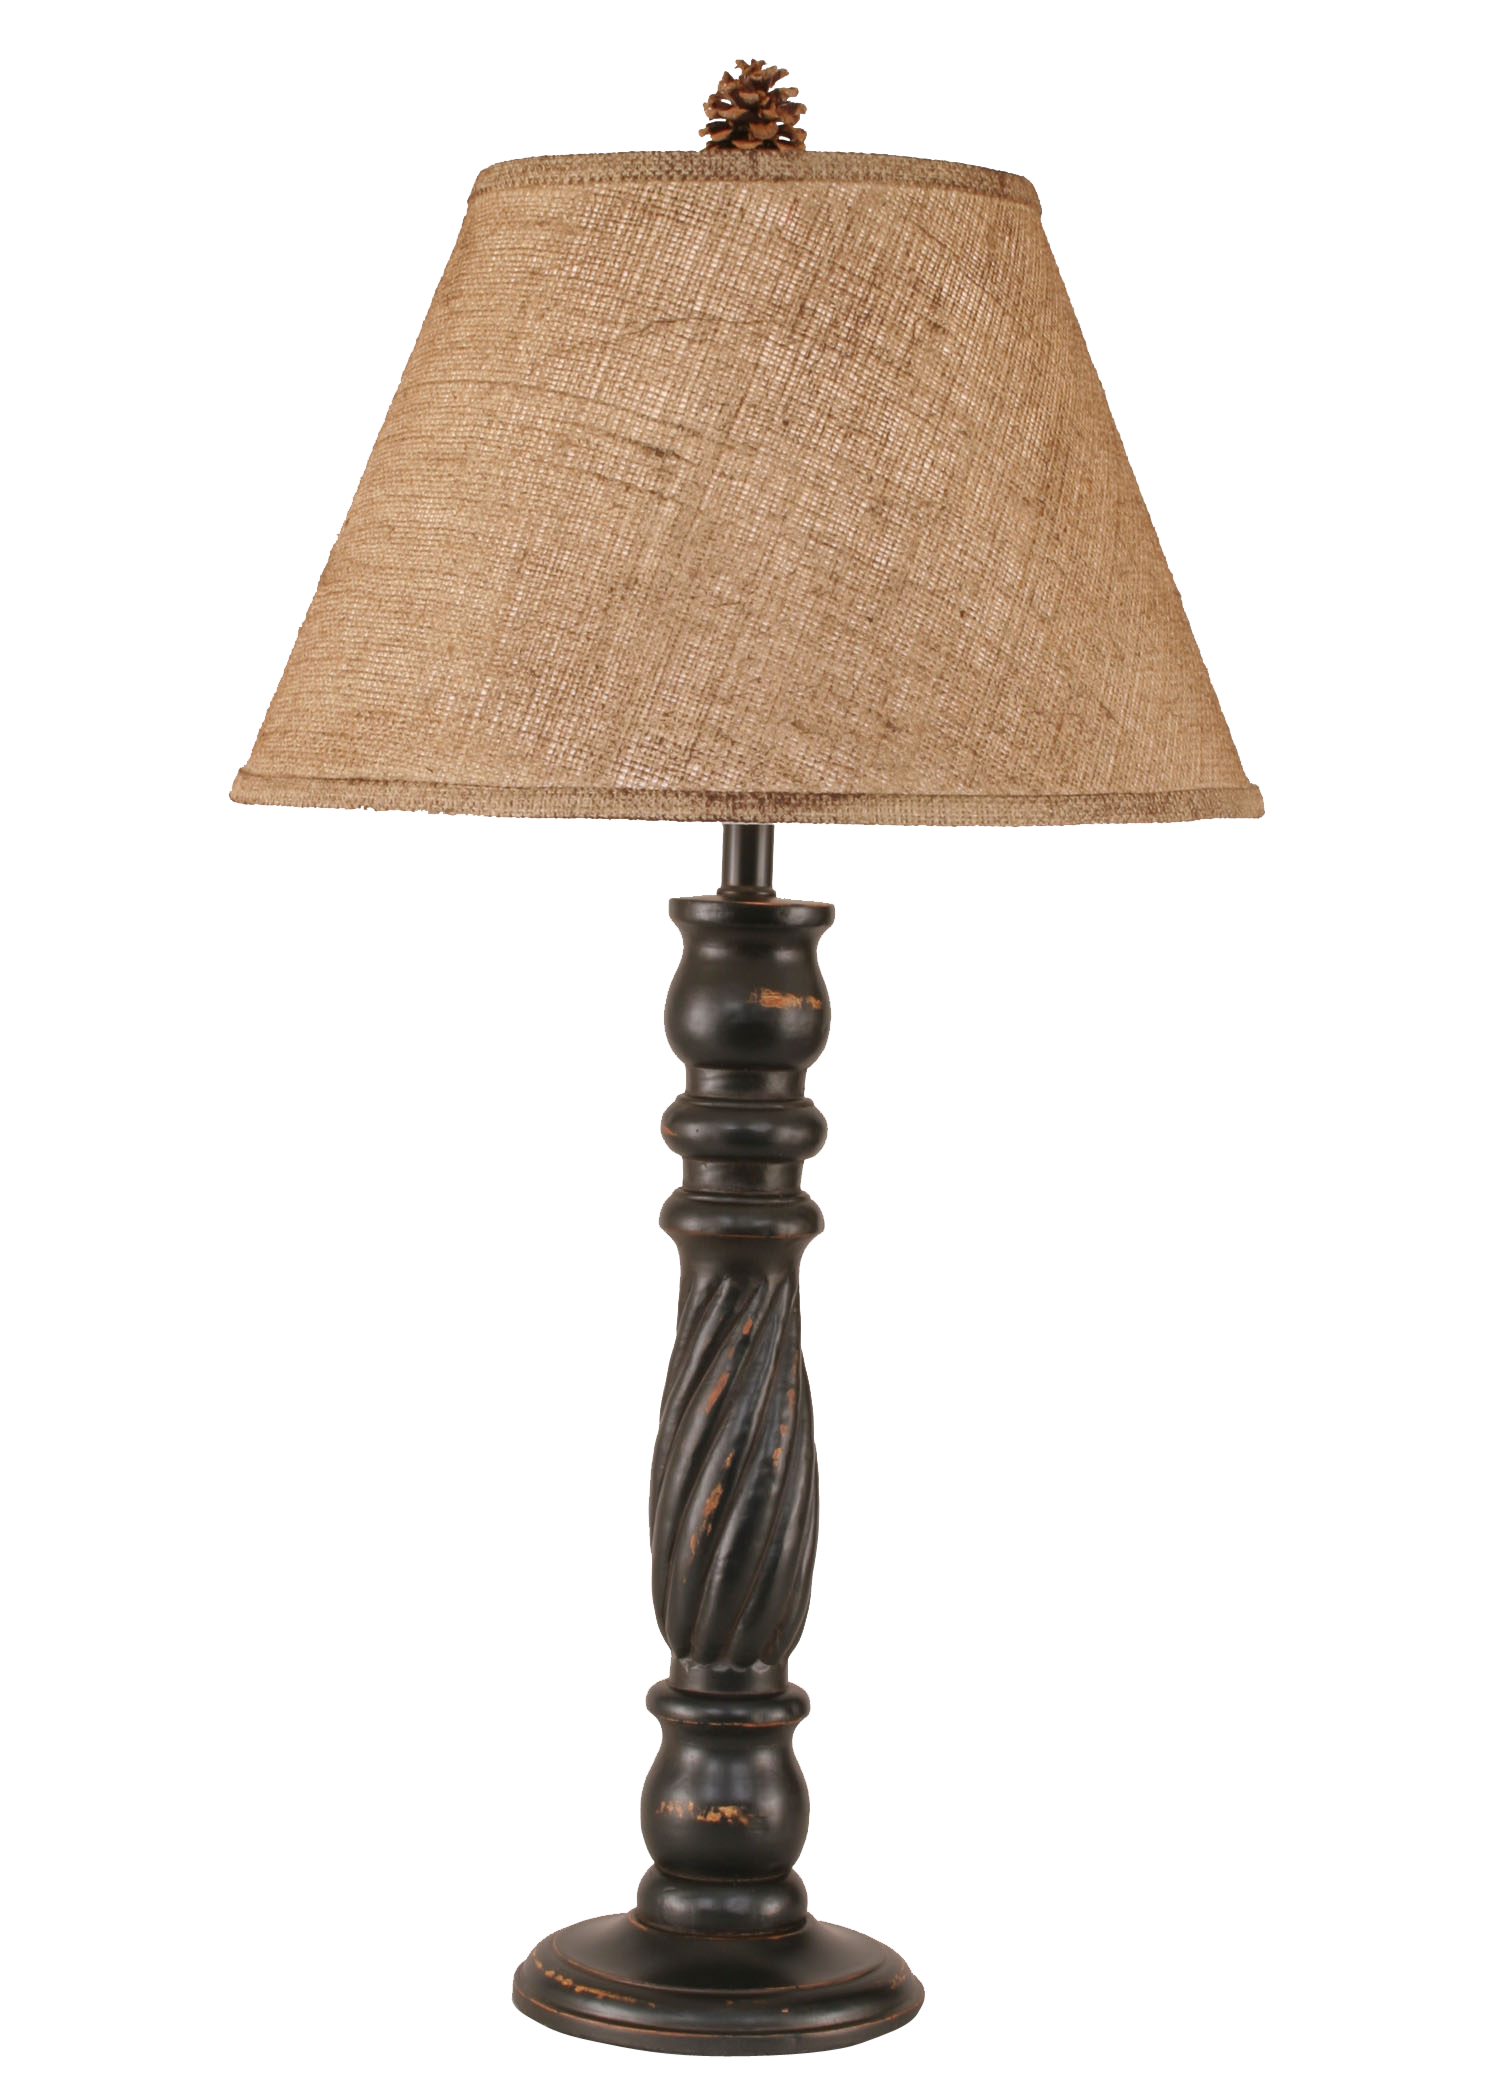 Distressed Black Swirl Table Lamp w/ Real Pine Cone Accent - Coast Lamp Shop